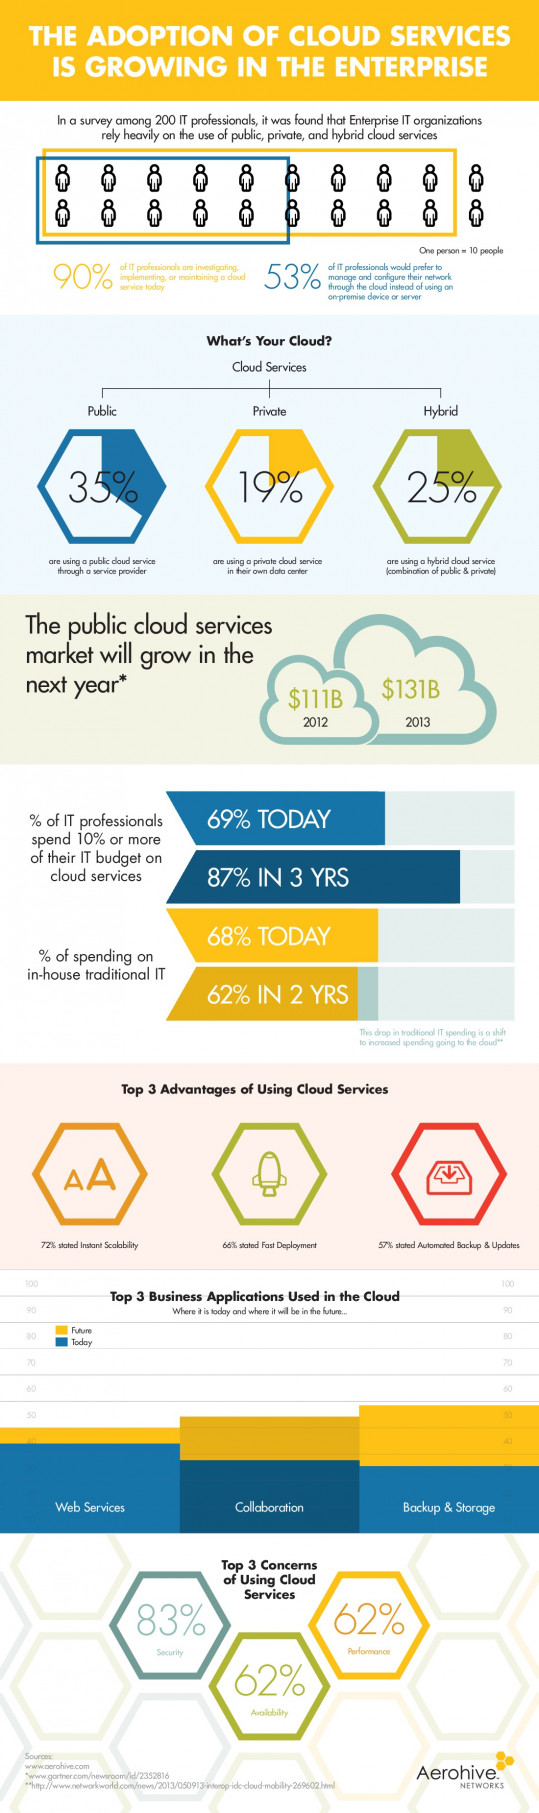 The Adoption of Cloud Services is Growing in the Enterprise